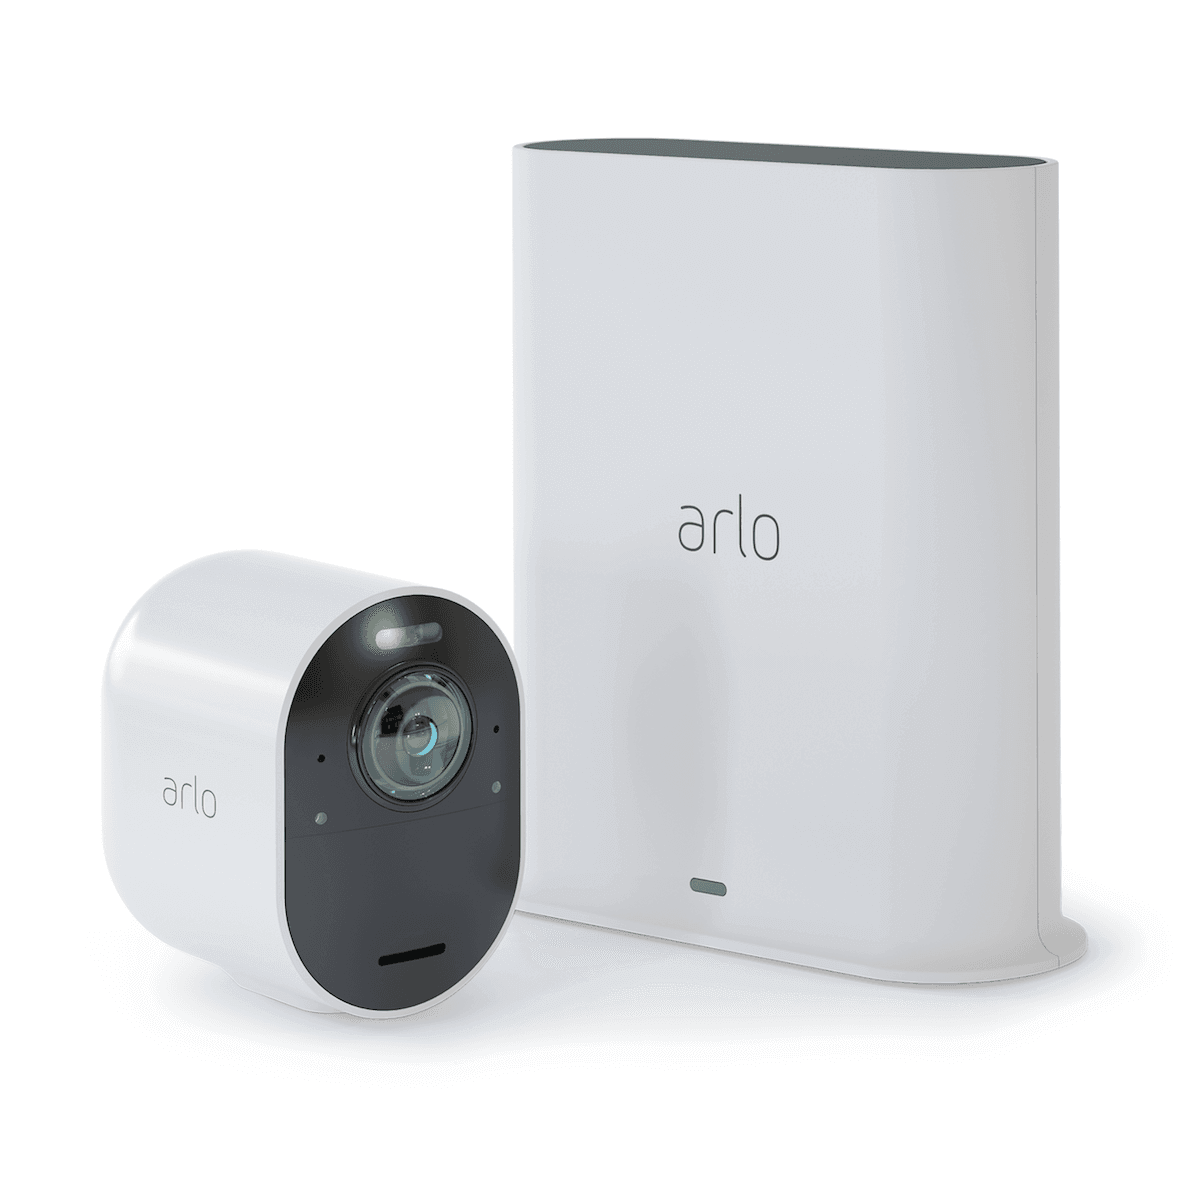 arlo ultra camera and base station